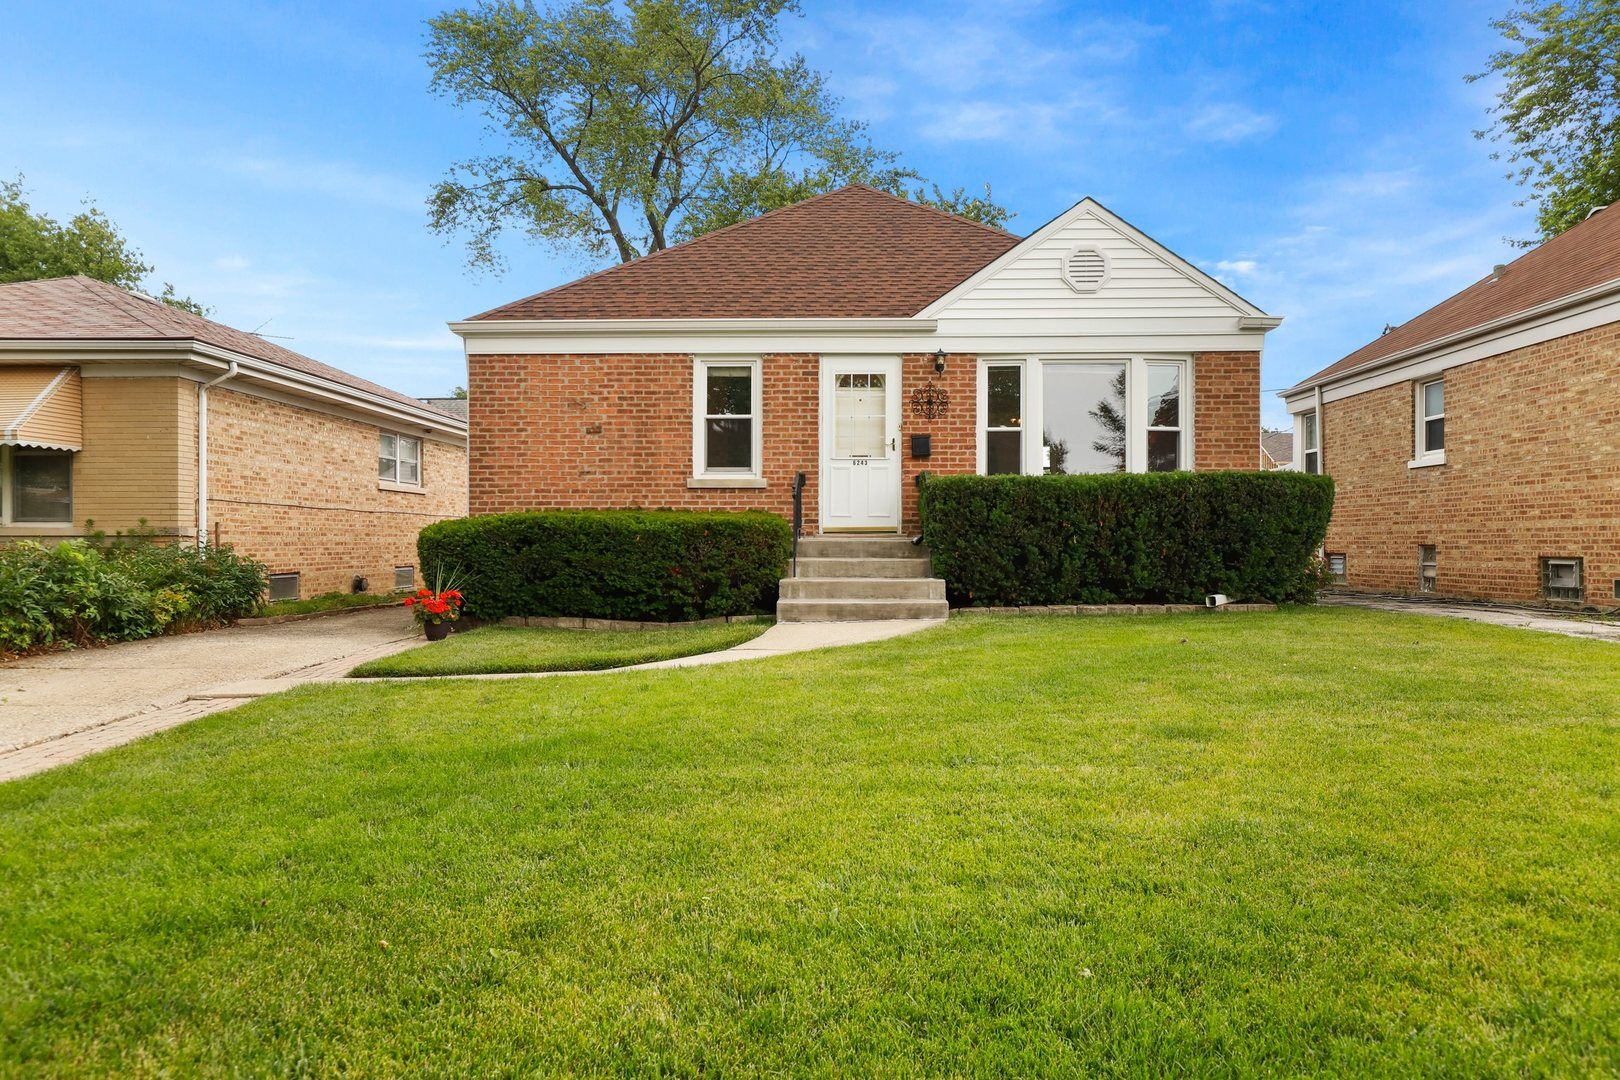 6243 N Canfield Avenue, Chicago, IL 60631 - #: 10766743